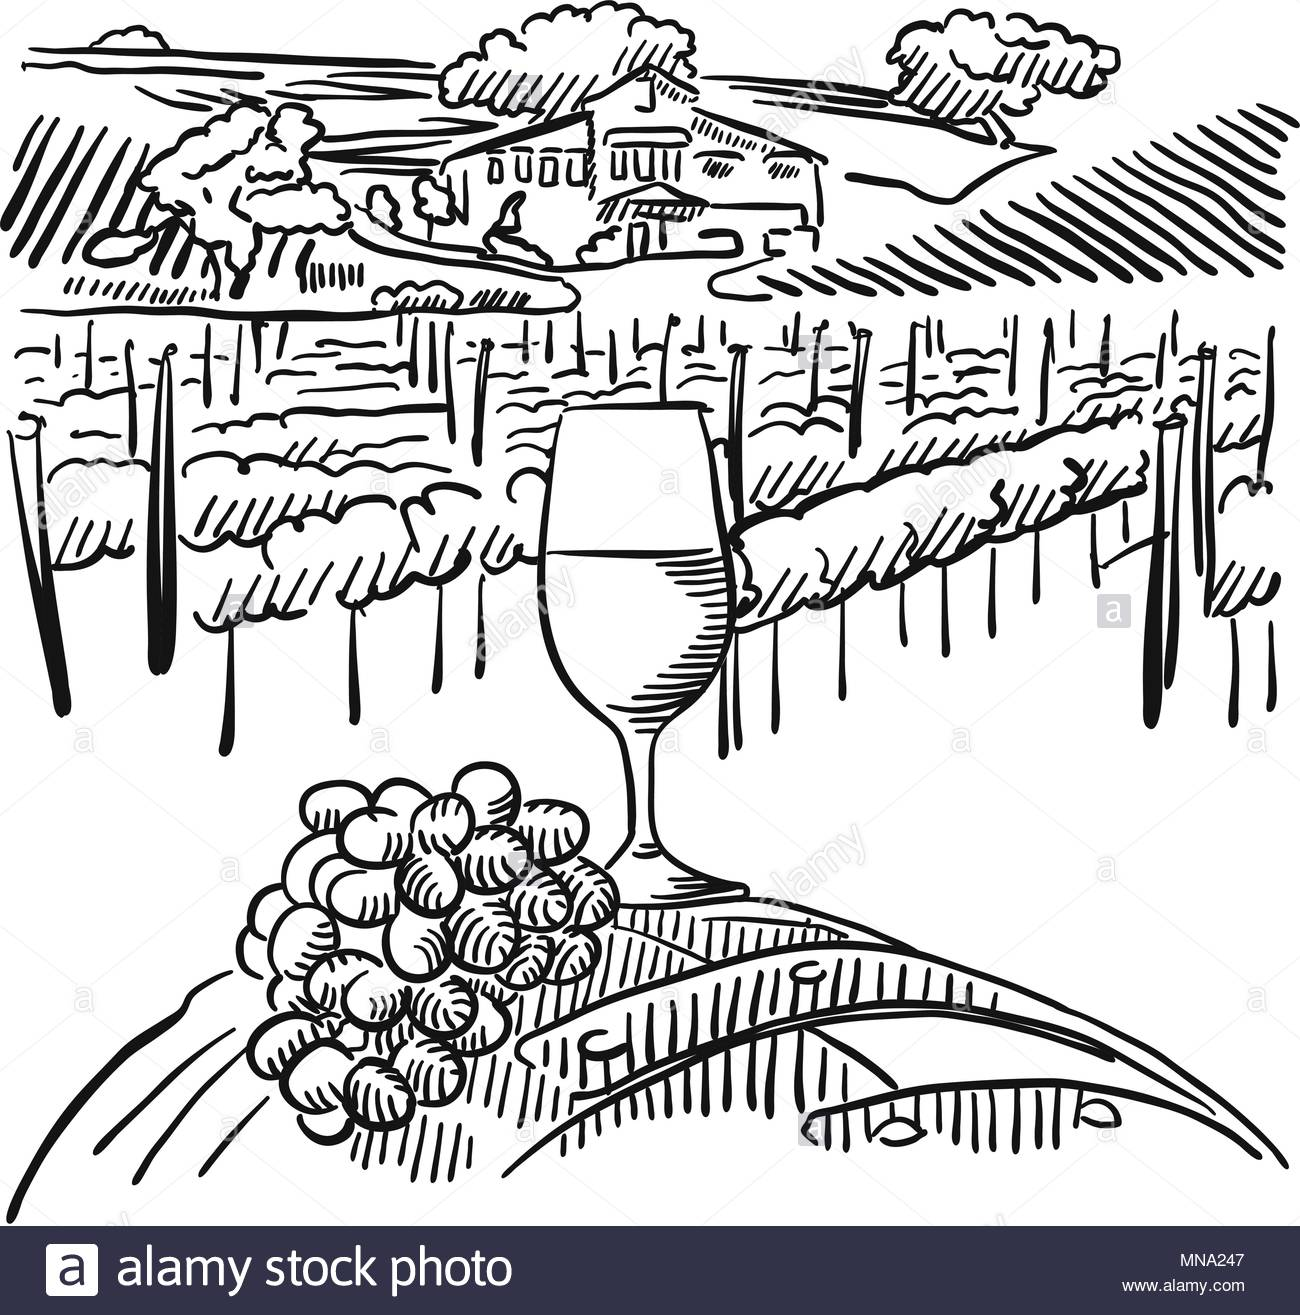 1300x1315 Vineyard With Hills And Glass Of Vine In Foreground, Vector